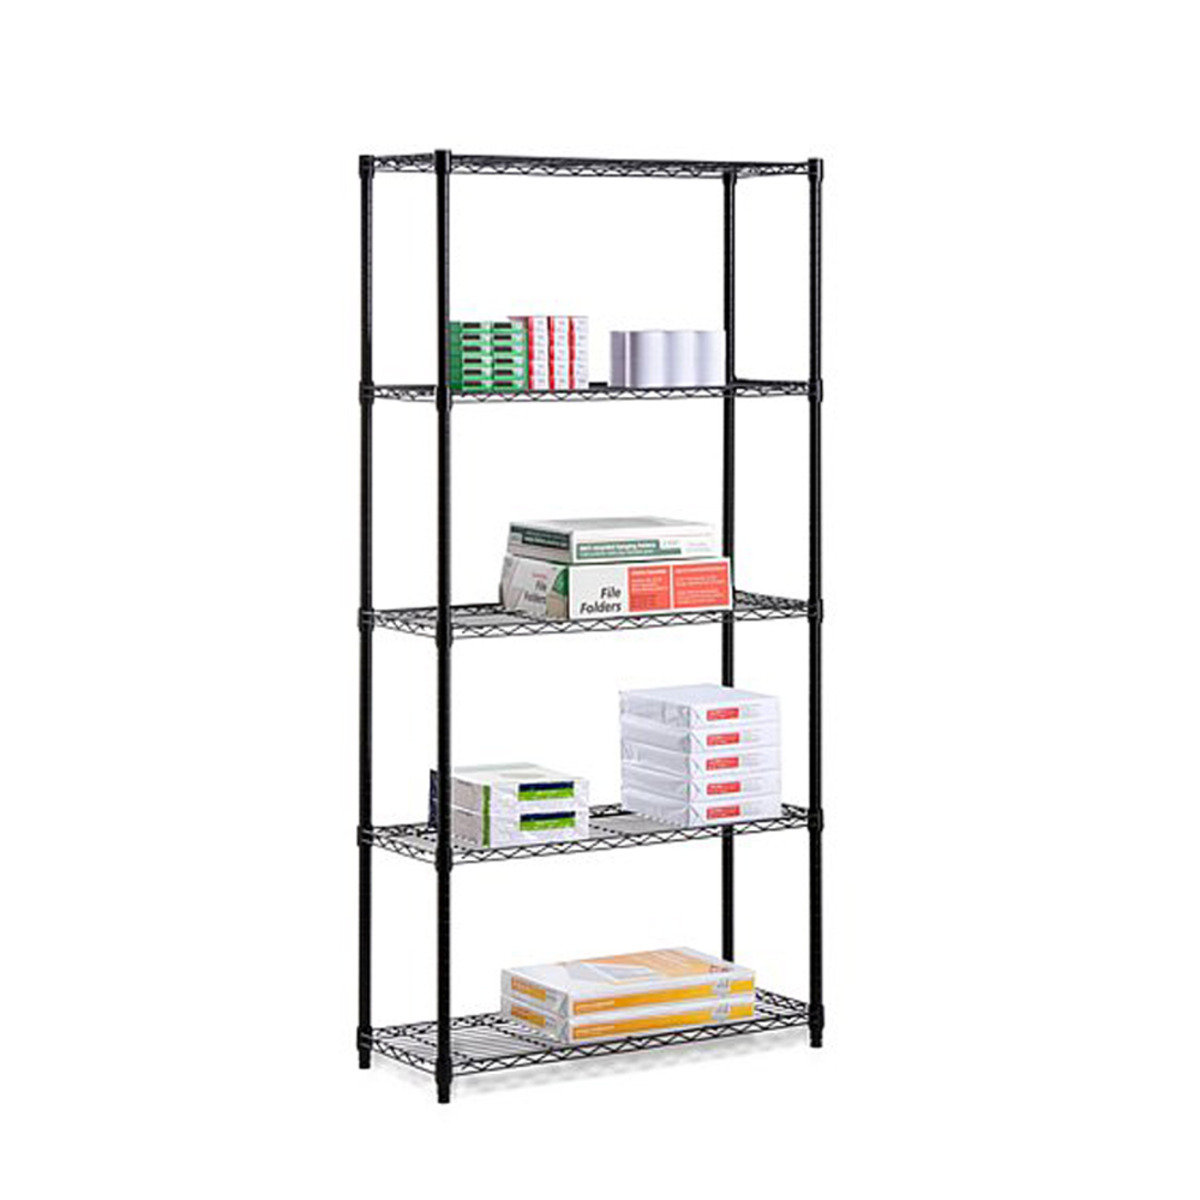 Expandable Five Tier Shelf (Black) - 54cm (RS954-01)